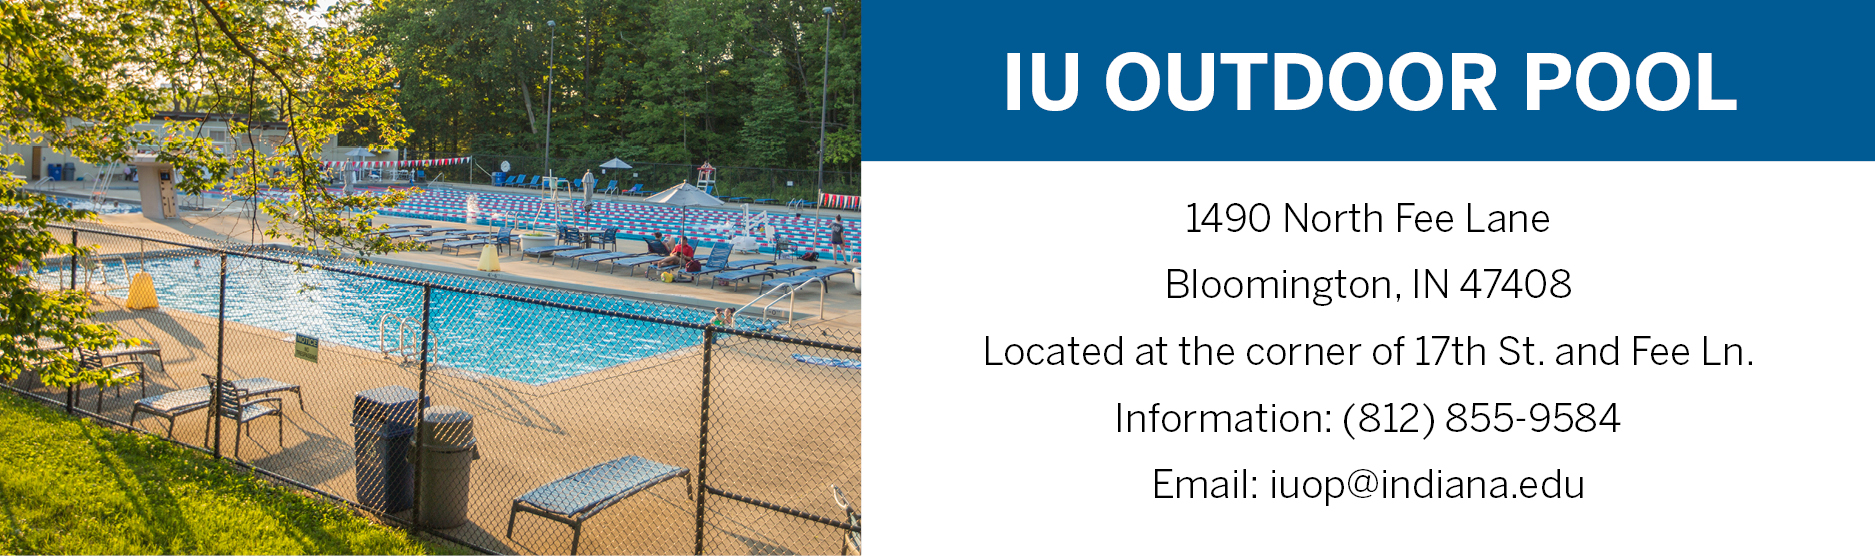 IU Outdoor Pool 1490 North Fee Lane Bloomington, IN 47408 Located at the corner of 17th St and Fee Ln (812)855-9584 iuop@indiana.edu